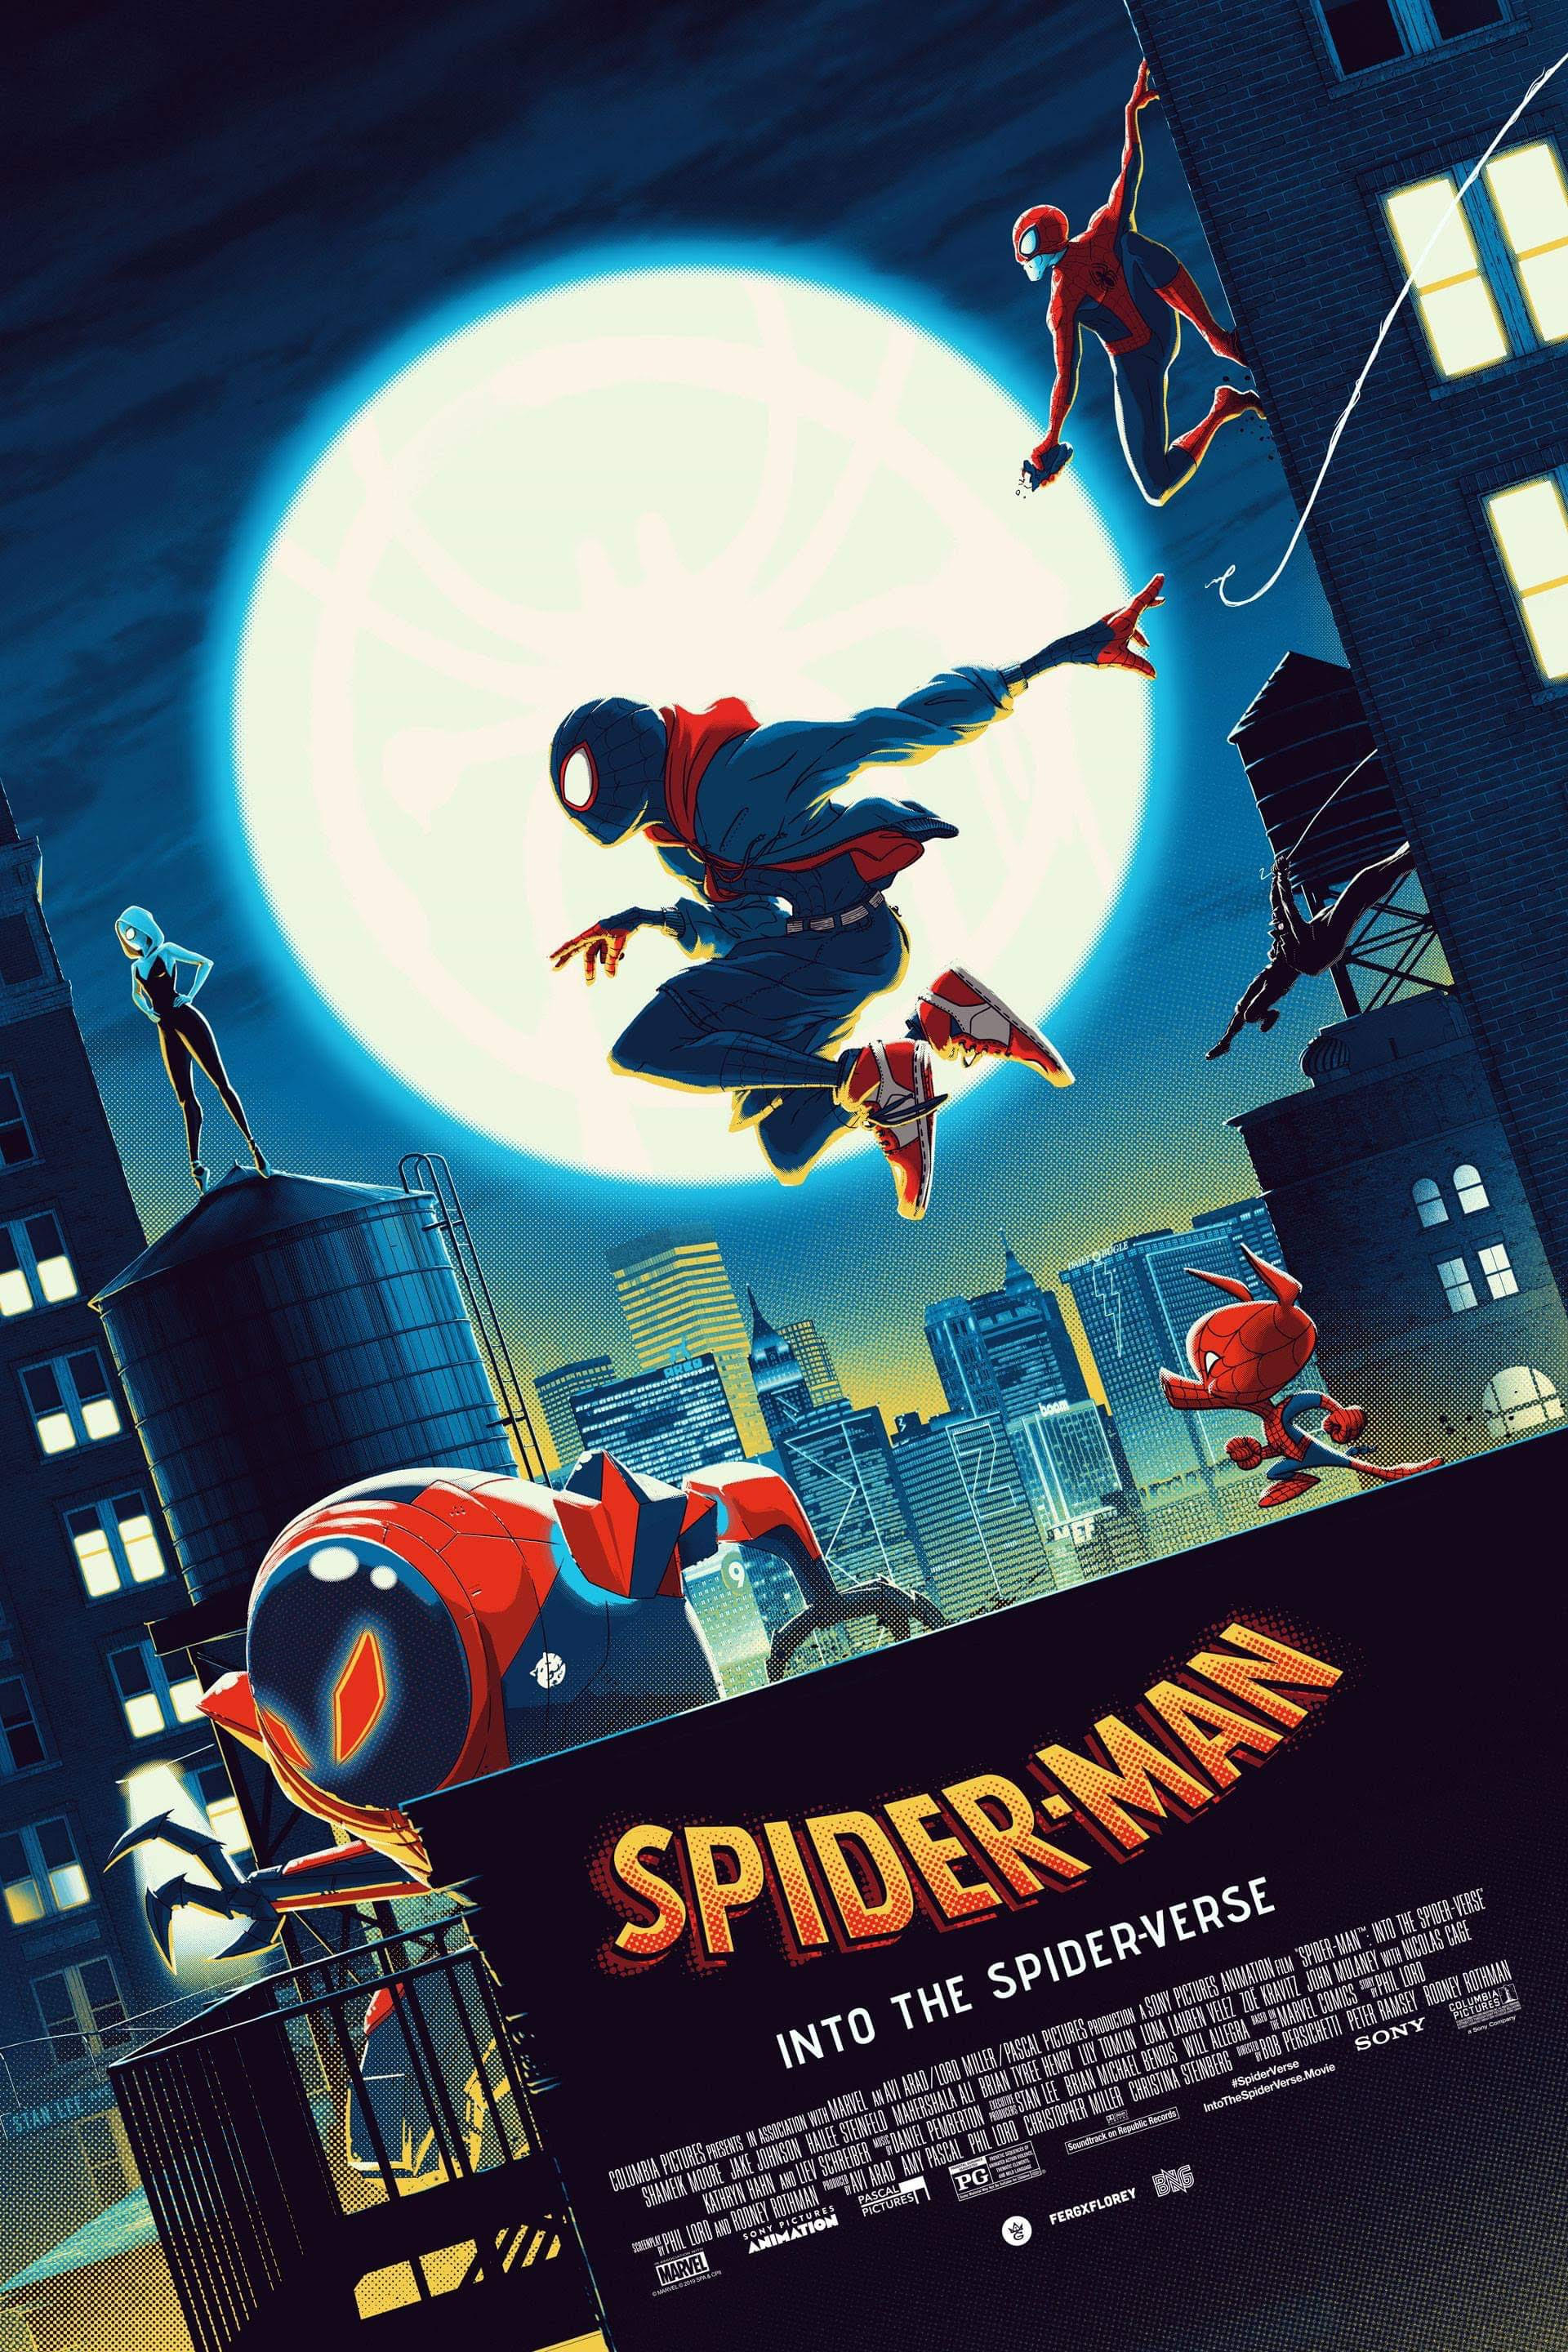 this-cool-spider-man-into-the-spider-verse-poster-art-from-matt-ferguson-glows-in-the-dark2